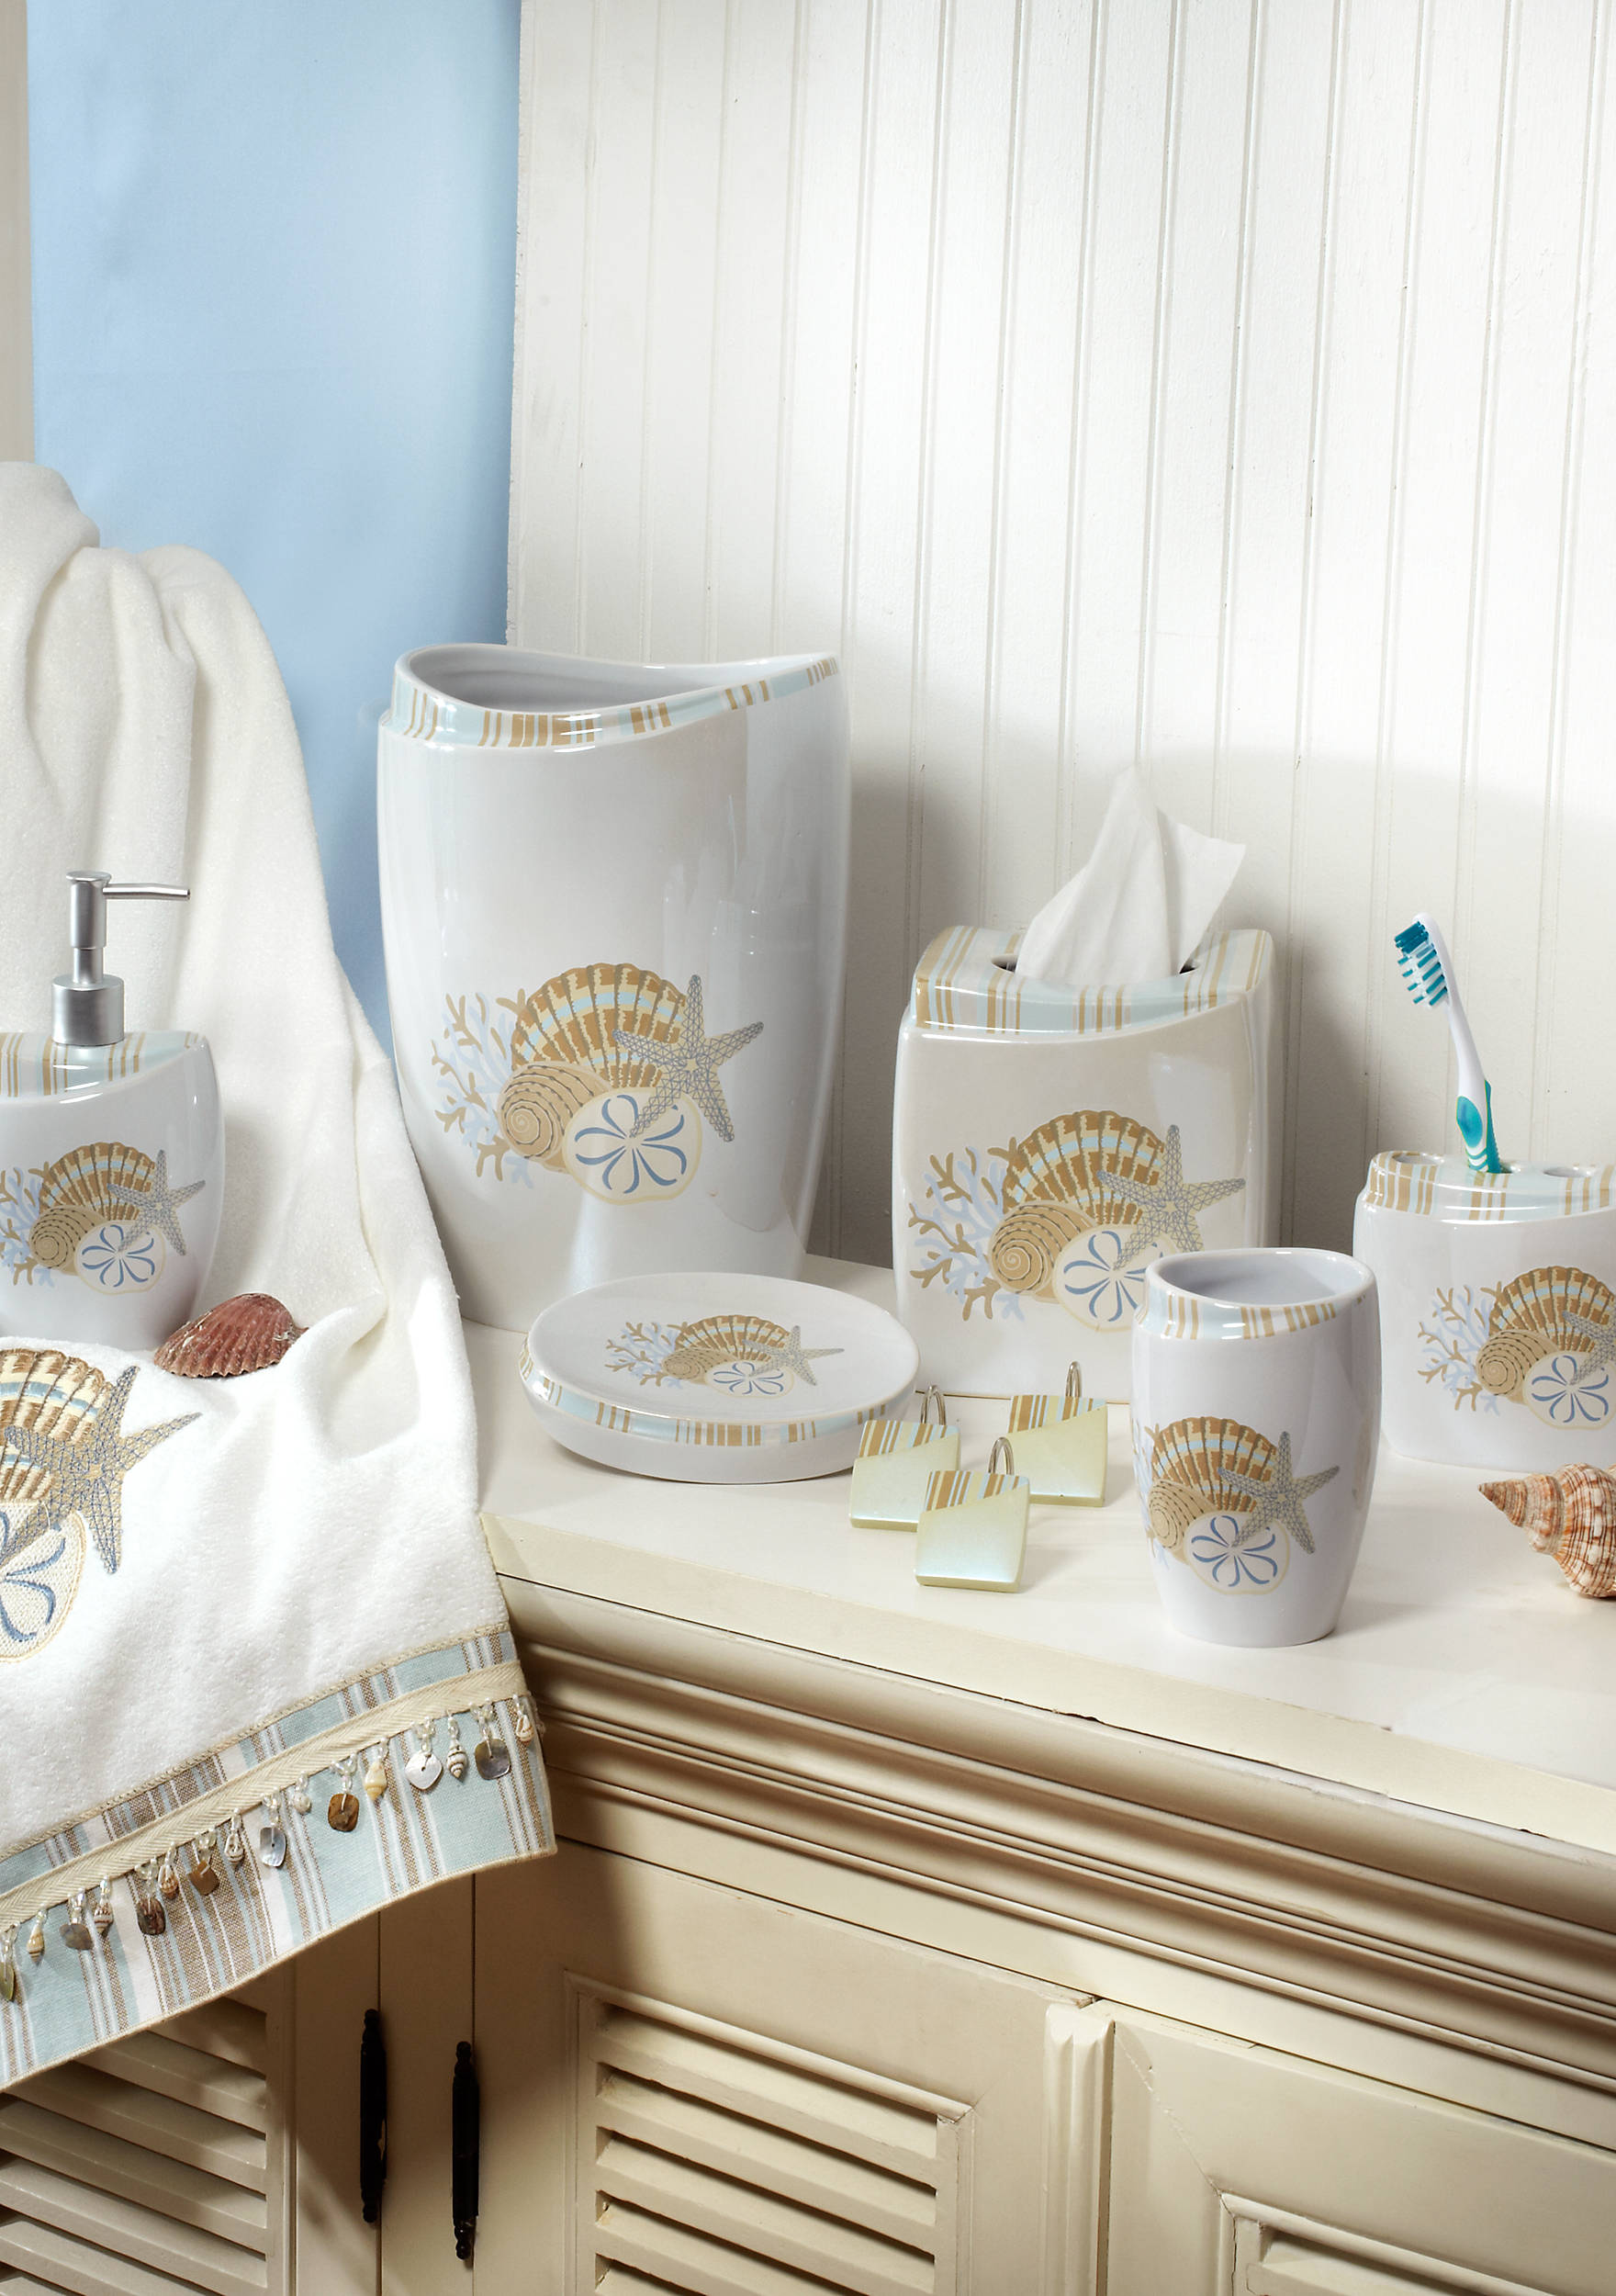 Avanti By The Sea Collection Bath Accessories, Shower Curtain, and ...